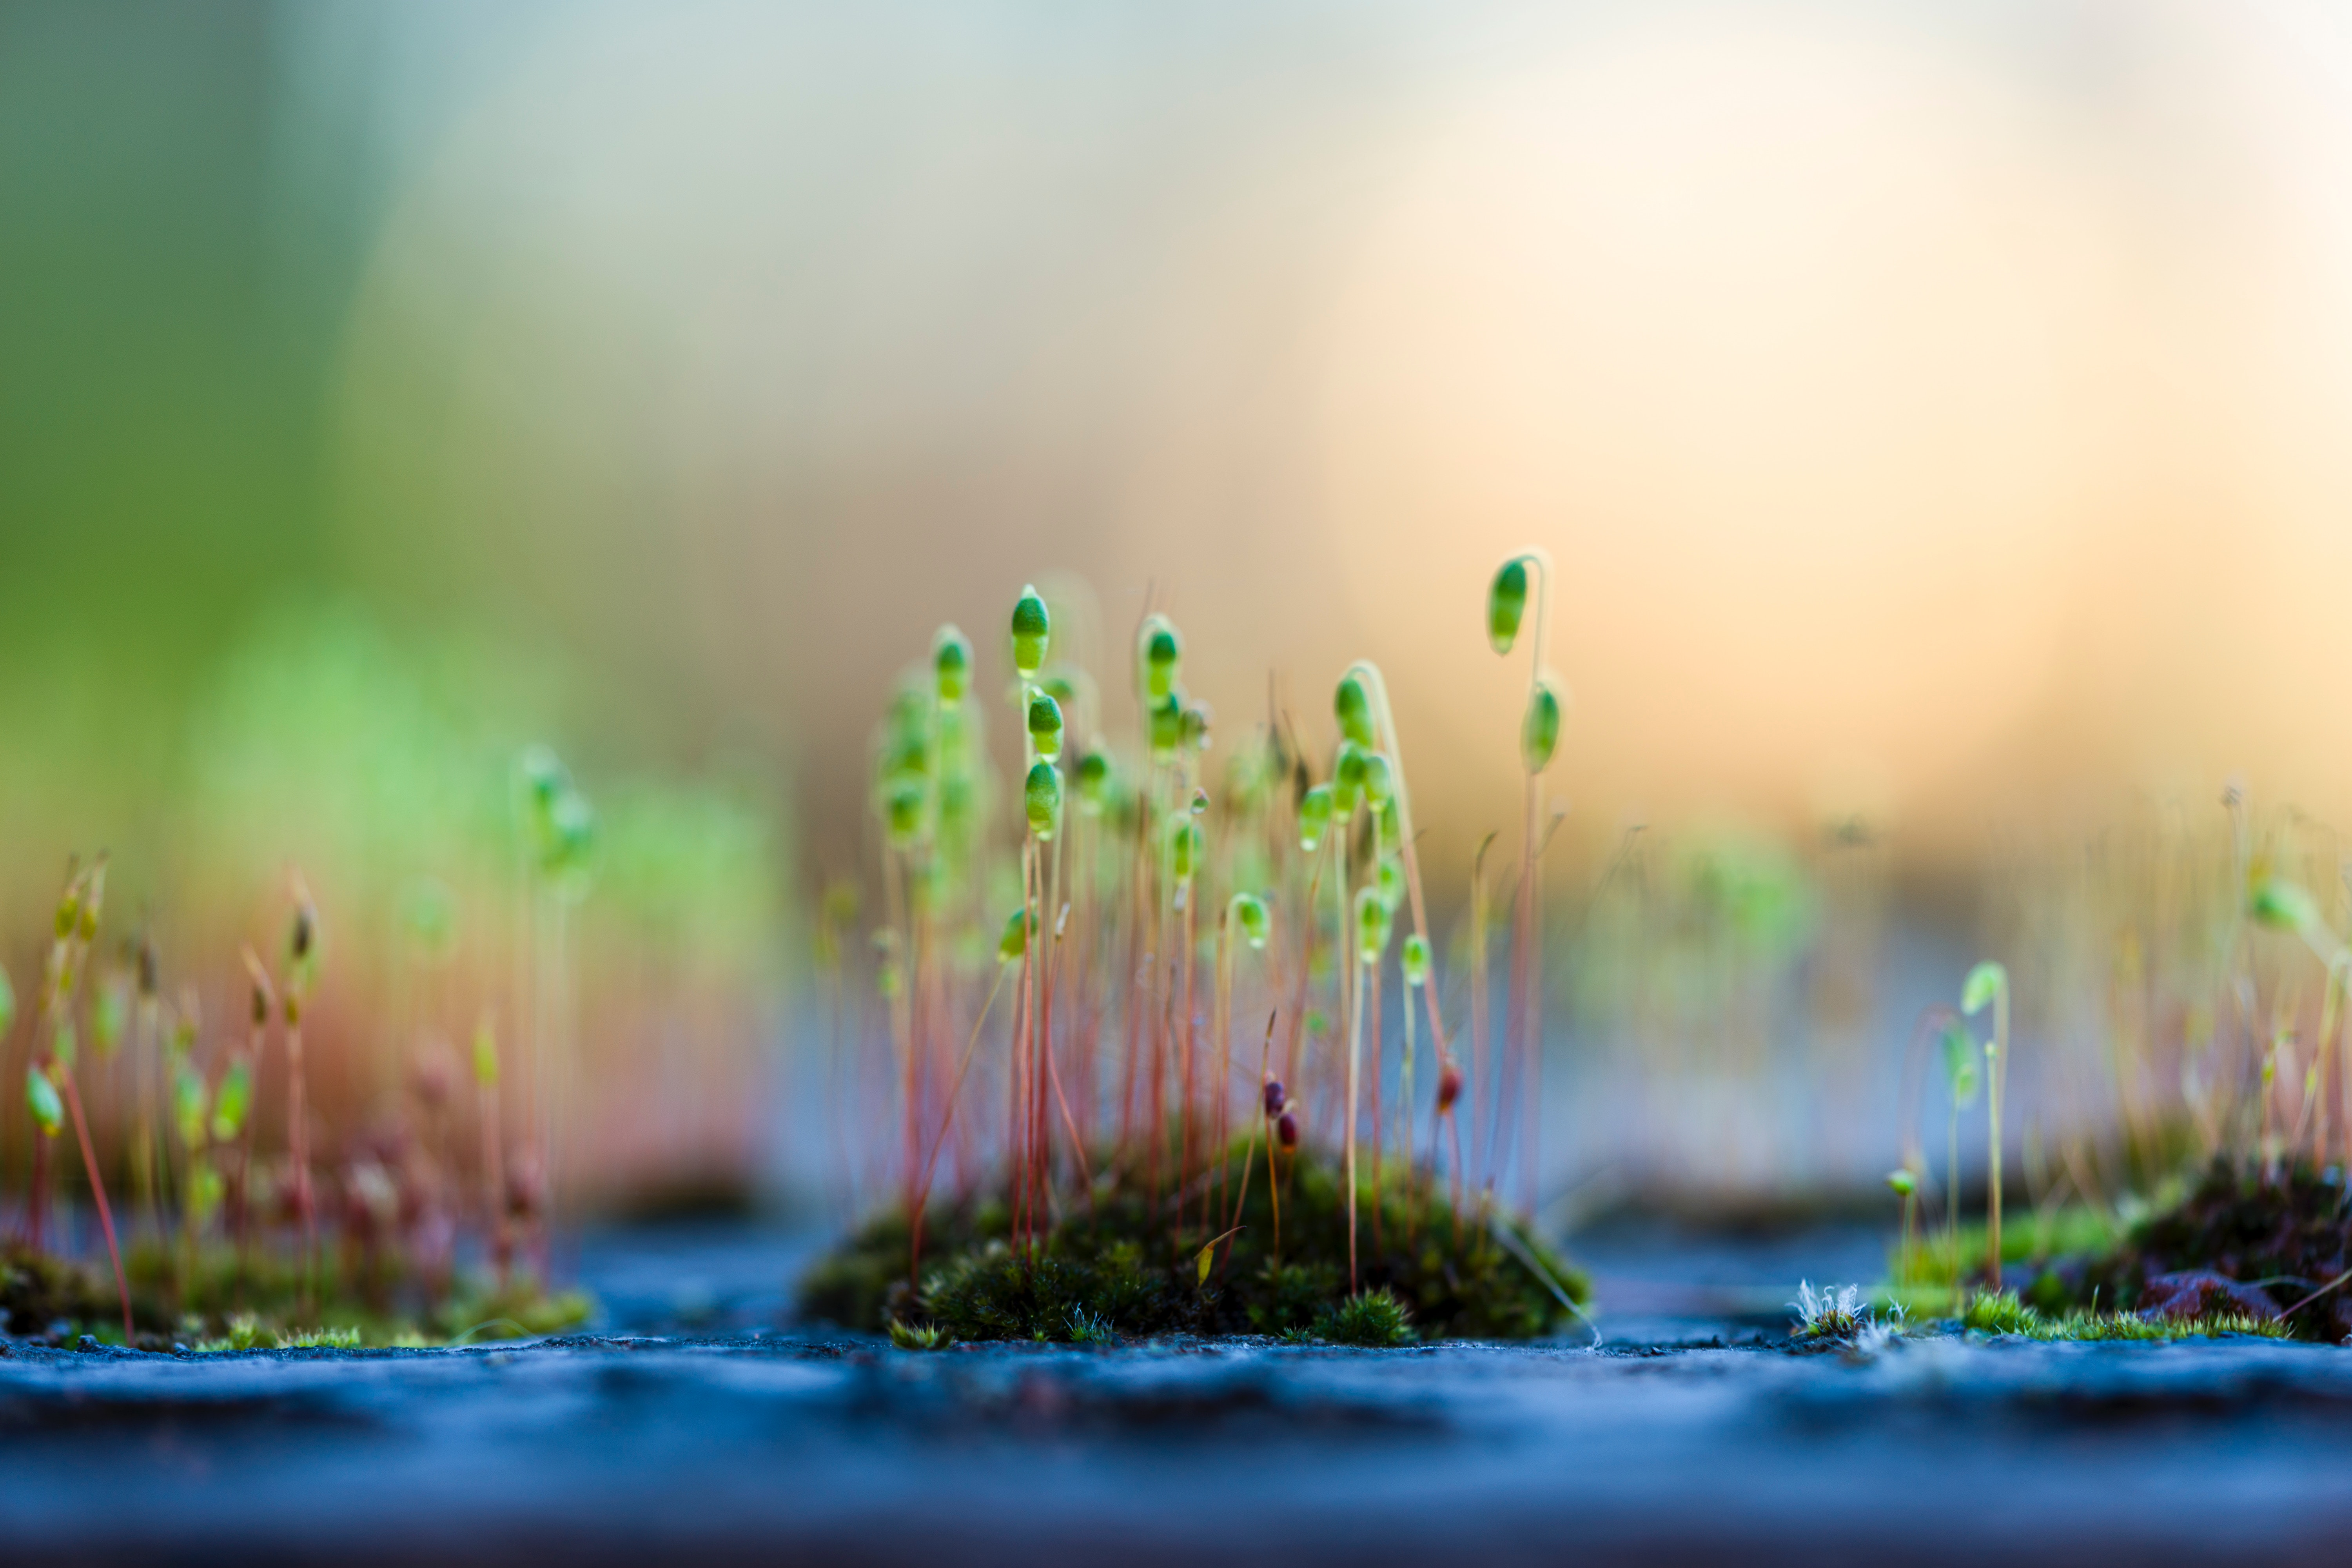 tiny seedlings grow out of patches of moss